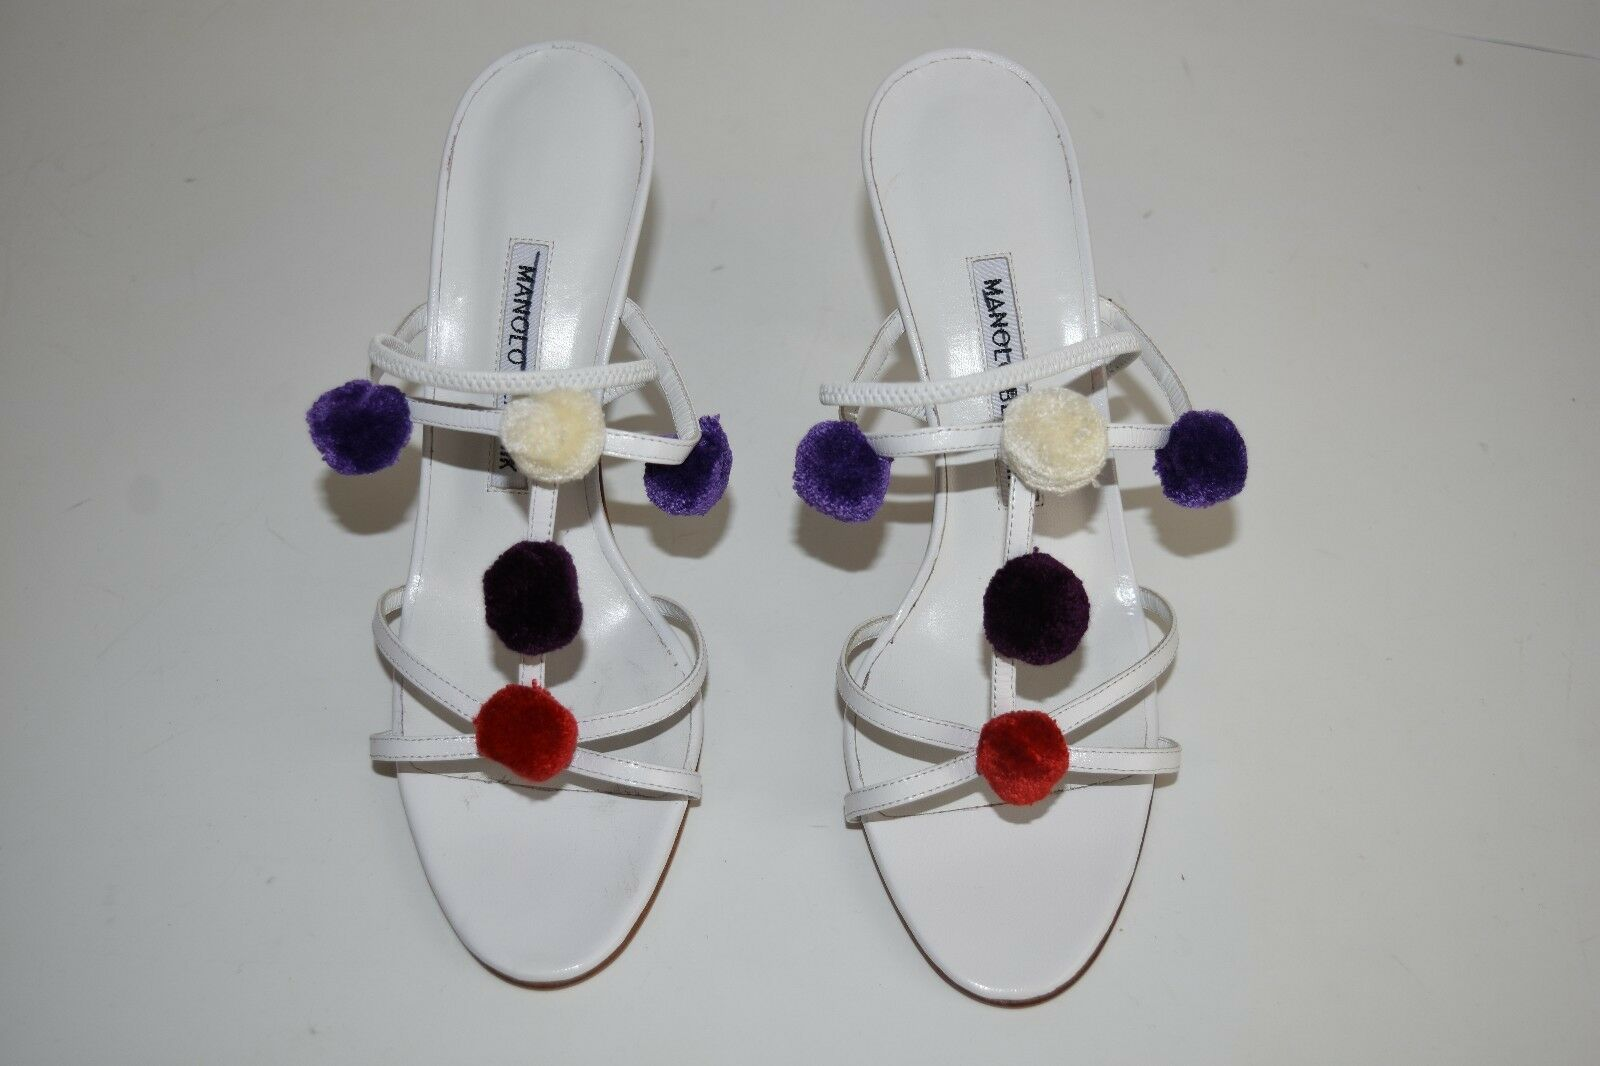 NEW MANOLO MANOLO MANOLO BLAHNIK MINK Pom Pom Sandals Strappy White Leather Heel shoes 37 56a90b